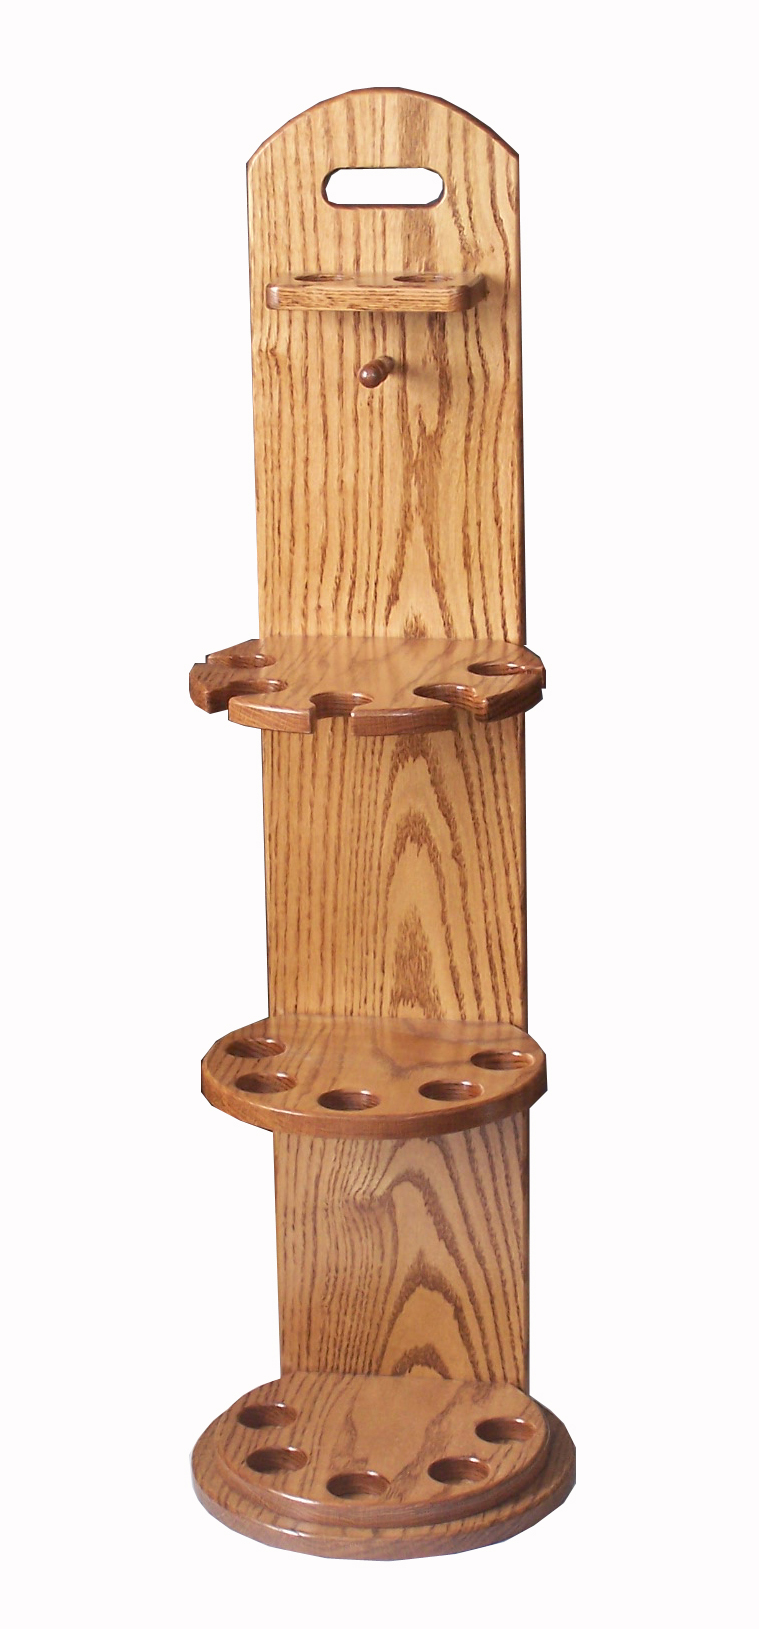 sports felson corner cue dp holders from to amazon wood pool made rack supply beech assemble easy billiard com